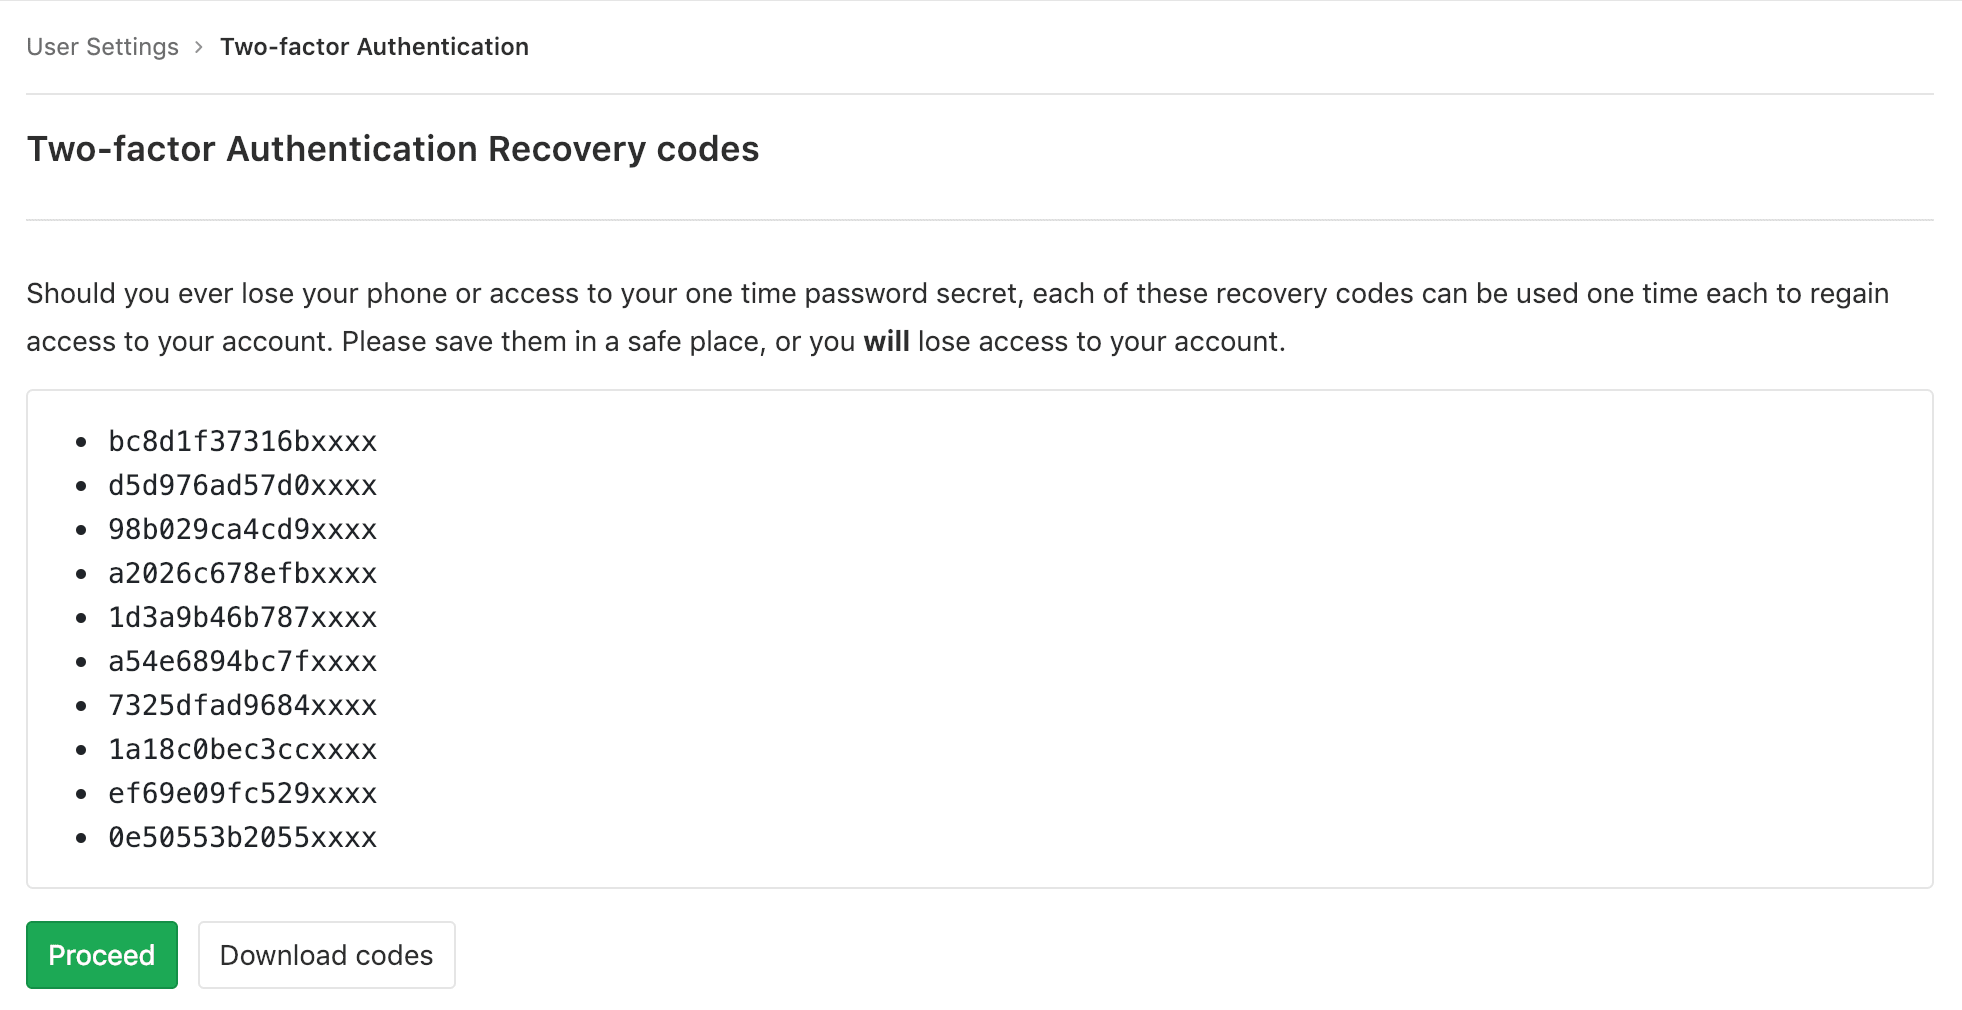 Download two-factor recovery codes